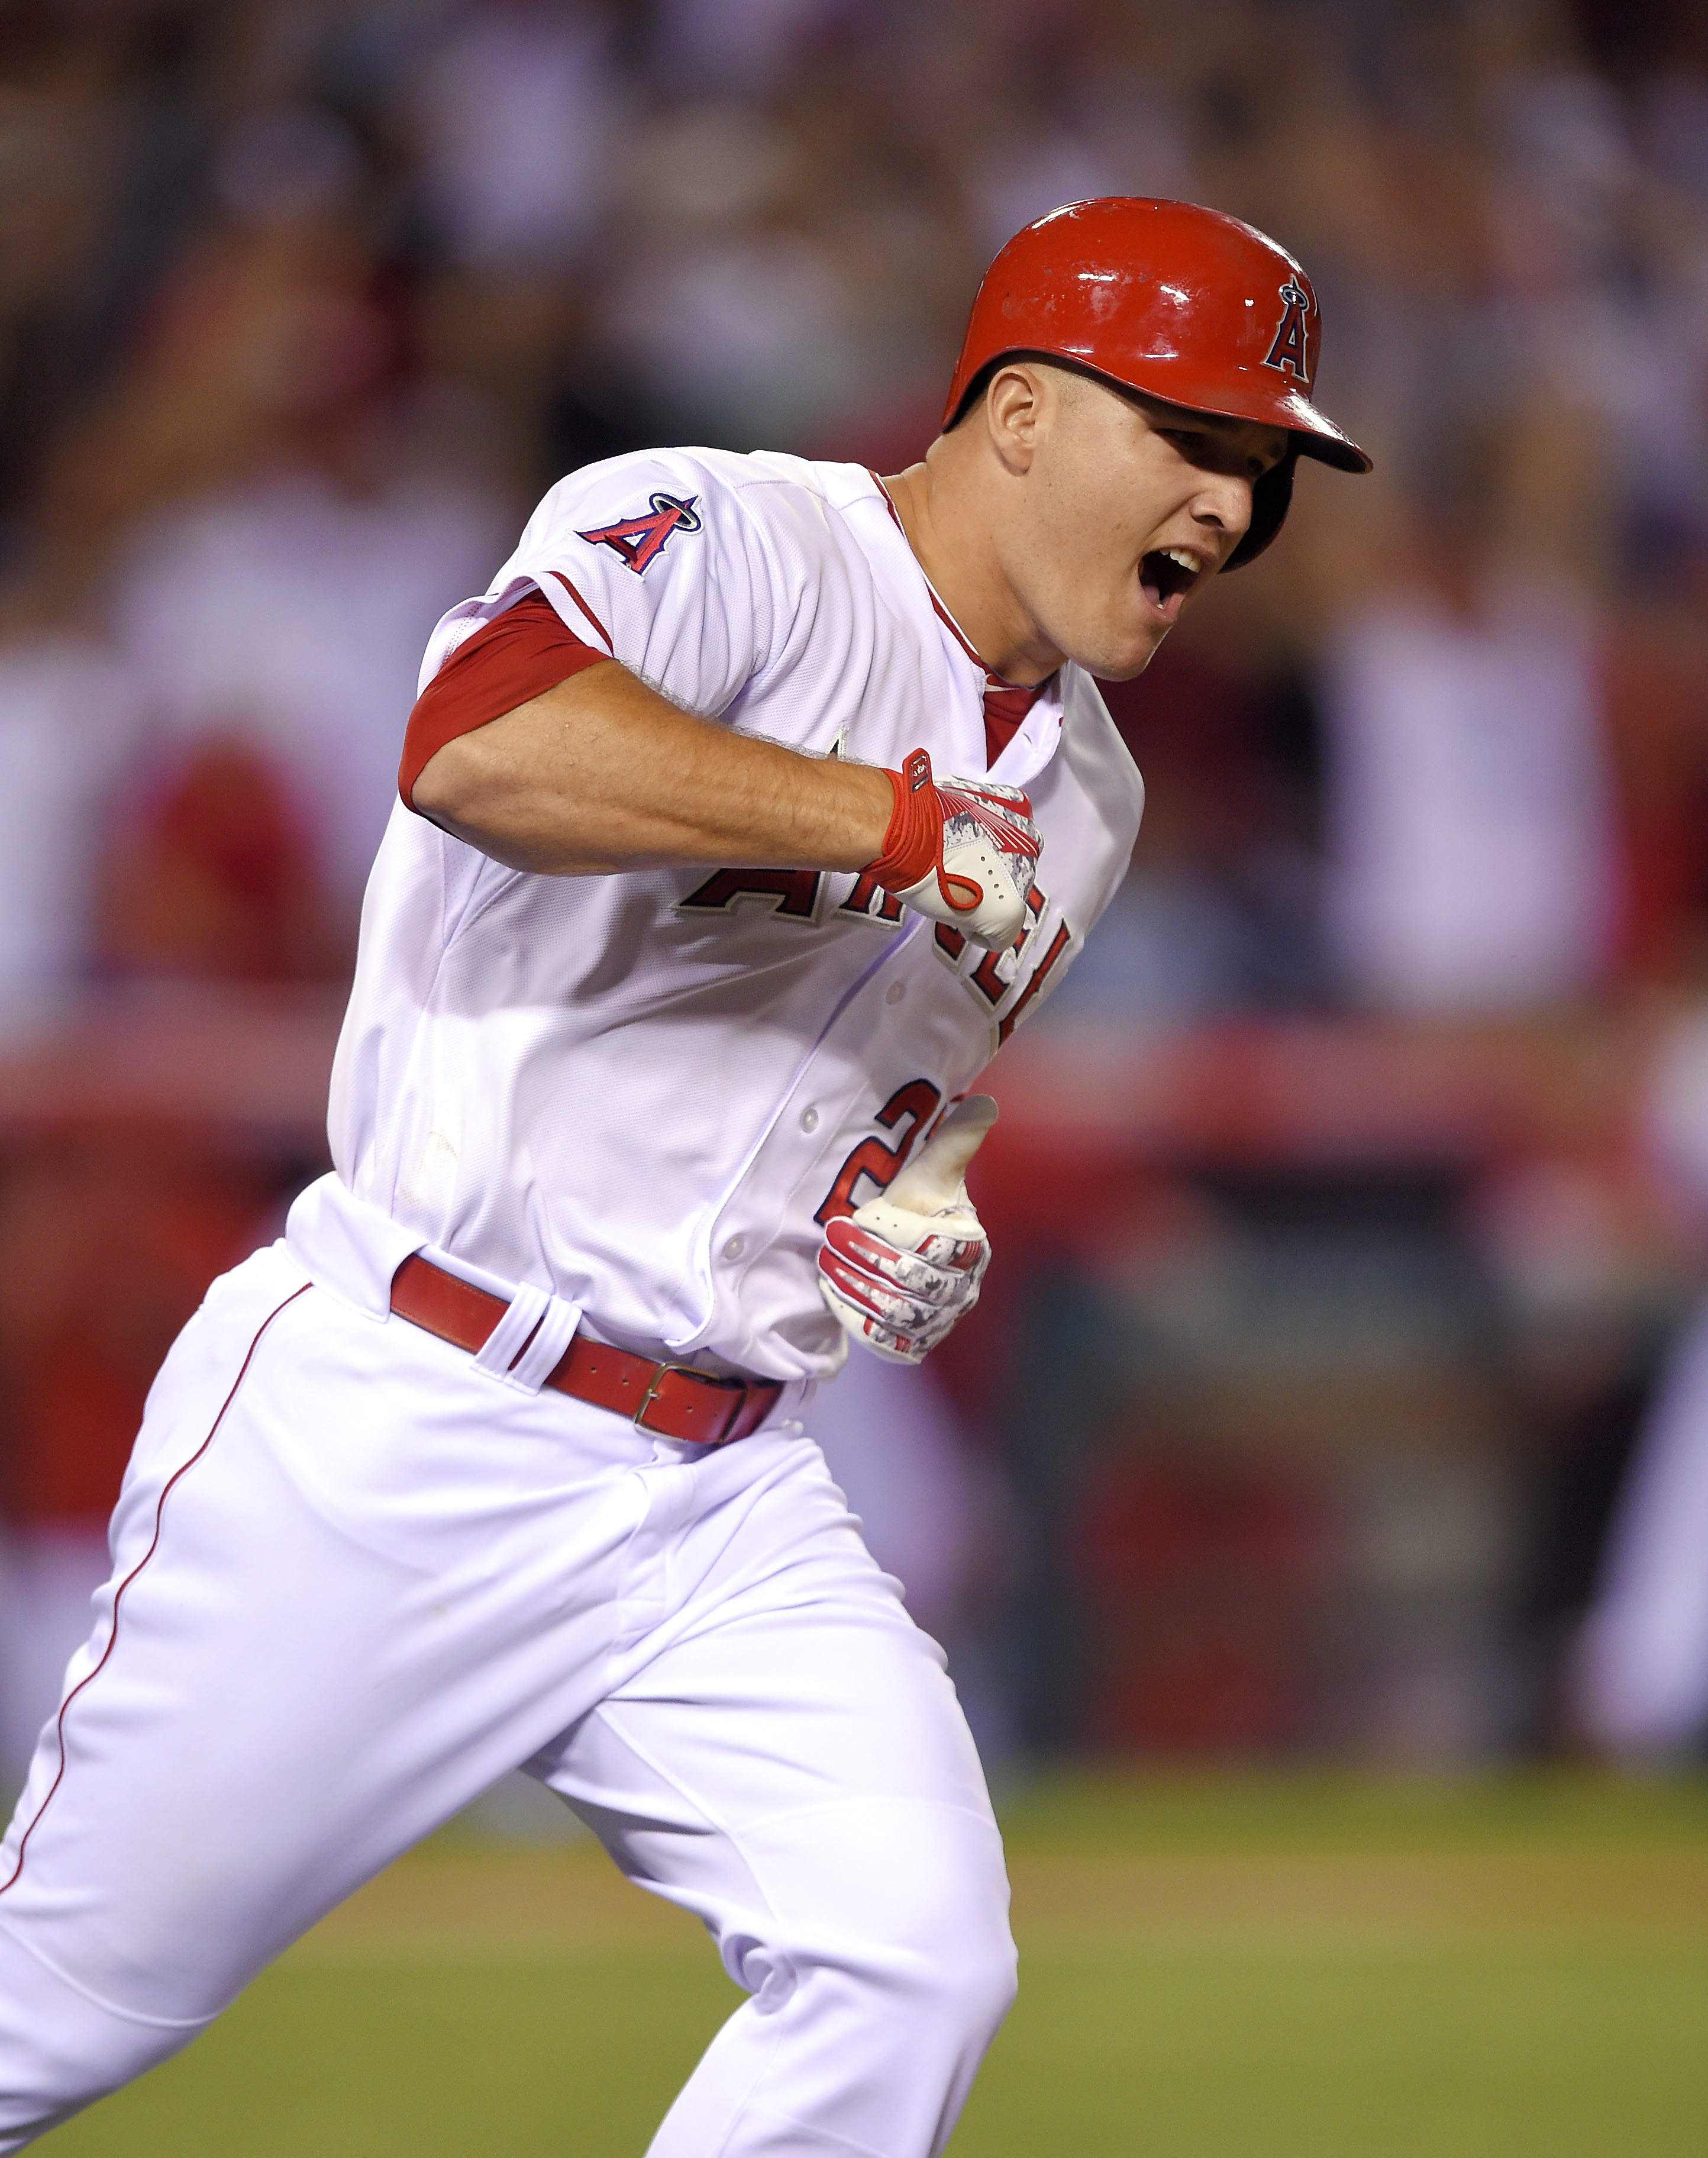 Los Angeles Angels' Mike Trout celebrates as he rounds first after hitting a solo home run during the ninth inning of a baseball game against the Boston Red Sox, Friday, July 17, 2015, in Anaheim, Calif. The Angels won 1-0. (AP Photo/Mark J. Terrill)